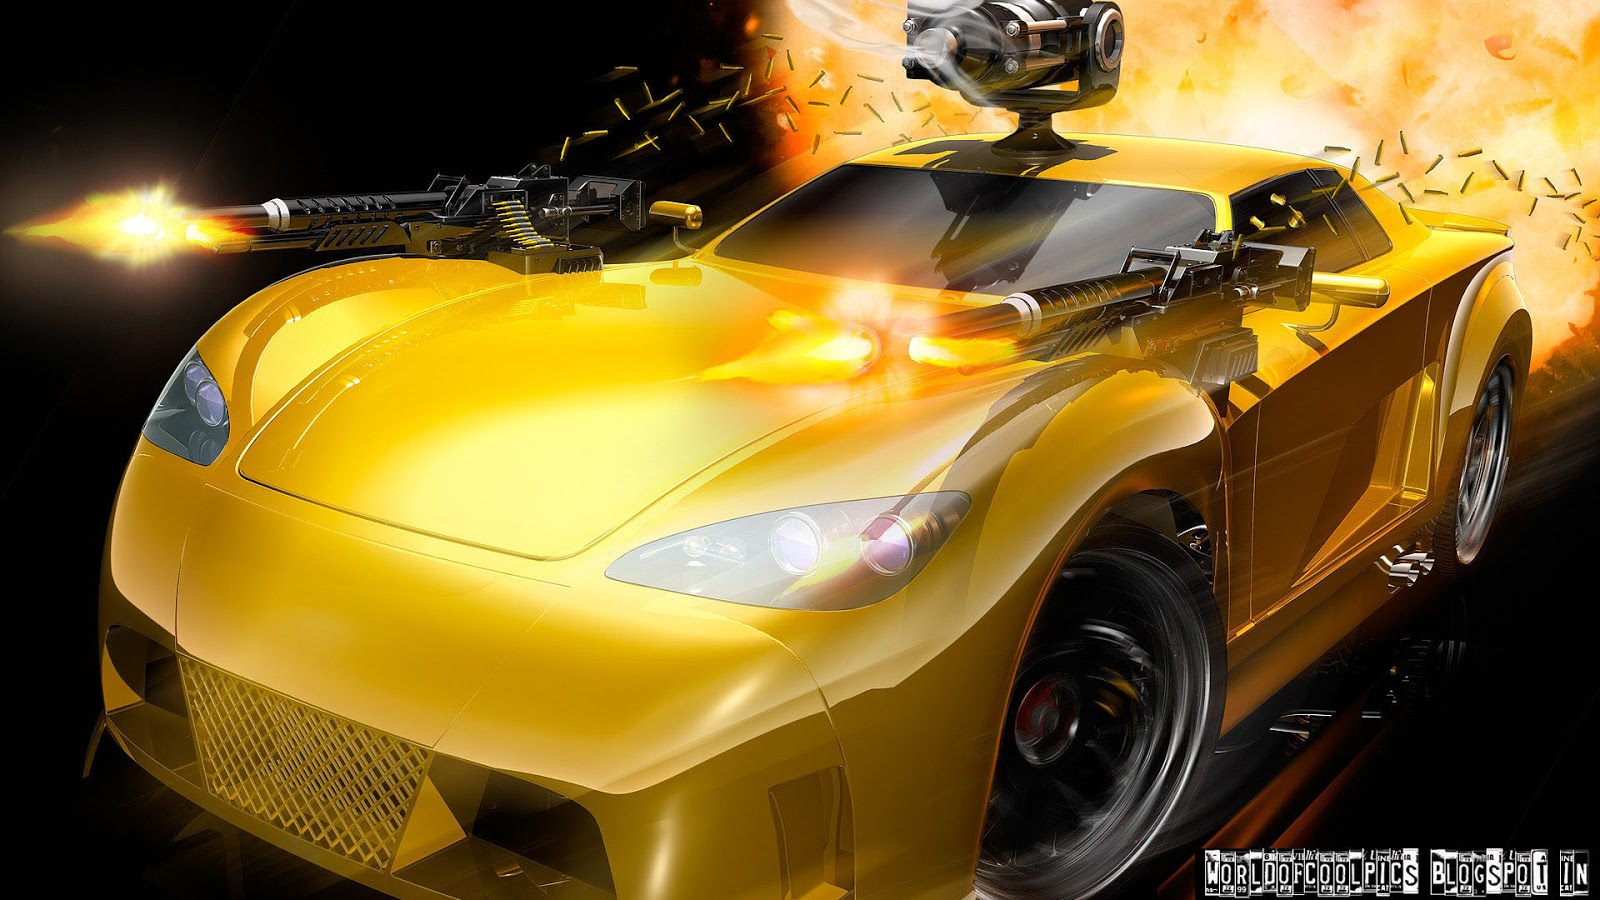 Its Cool Or Hot Car With Guns Welcome To World Of Images - Cool cars with guns